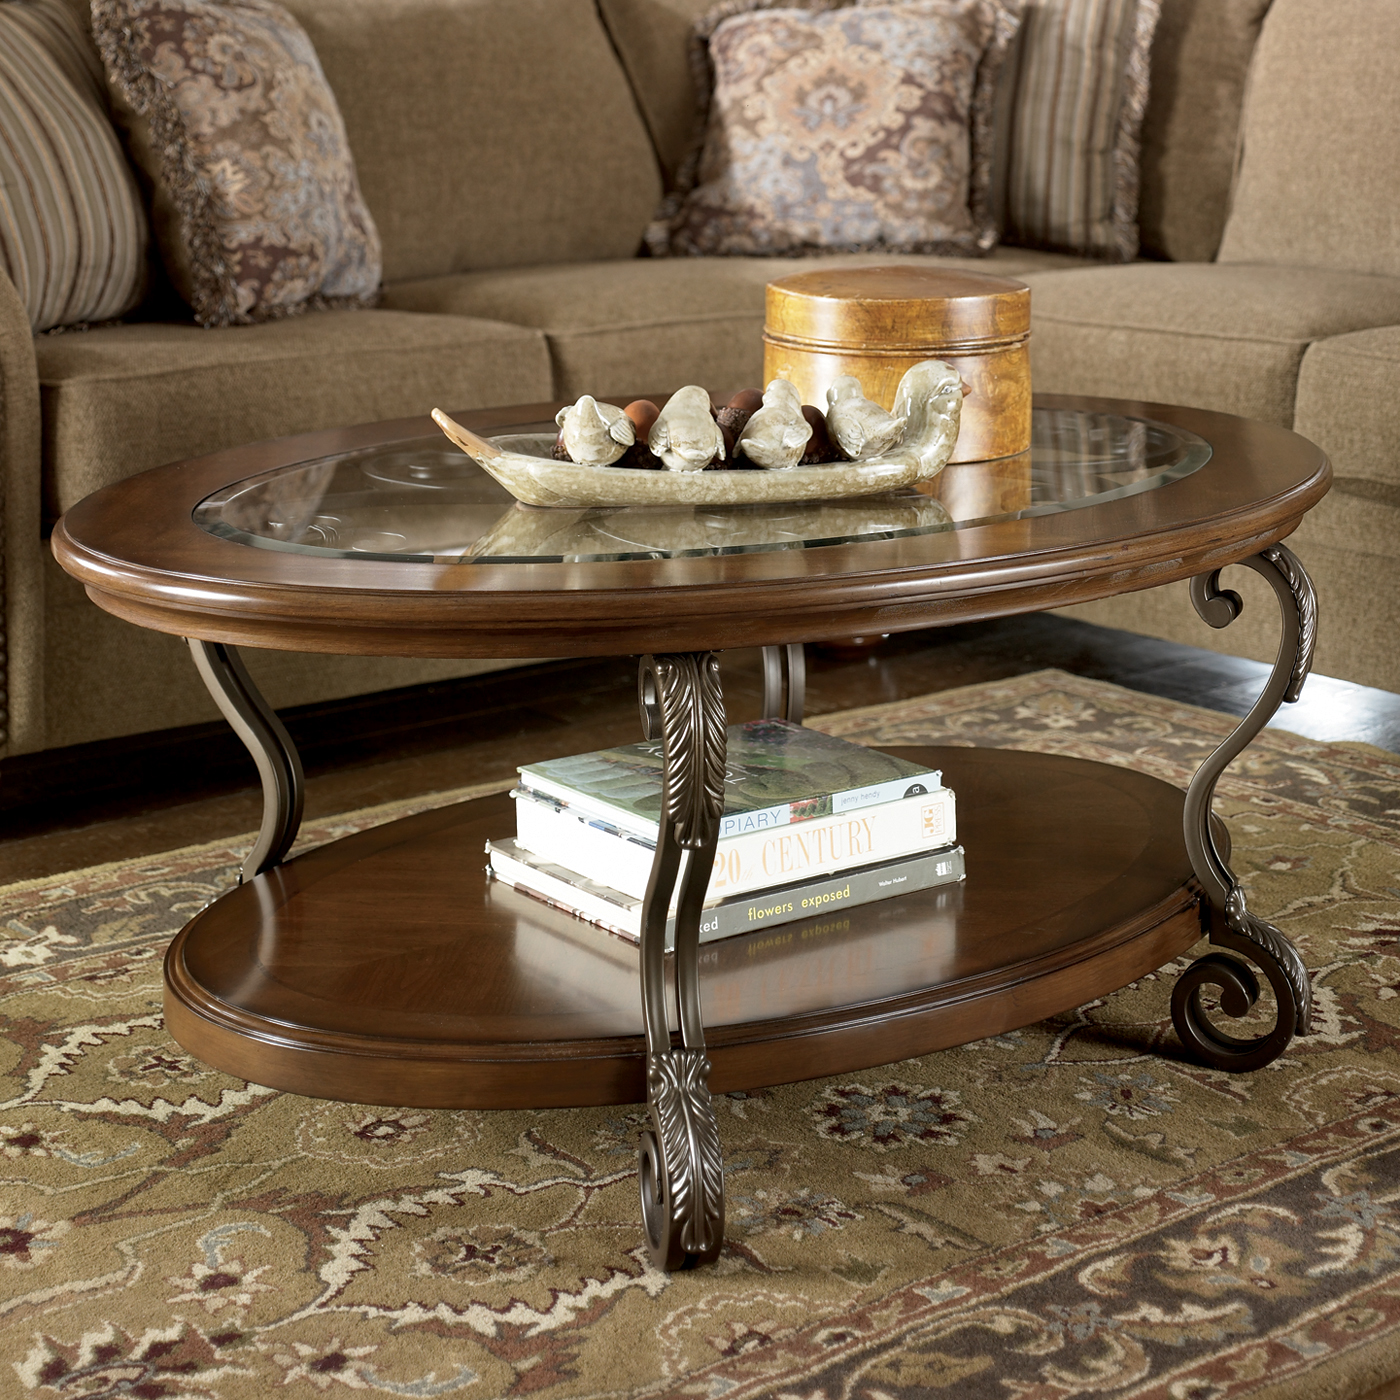 Signature Design by Ashley Nestor Oval Cocktail Table - Medium Brown